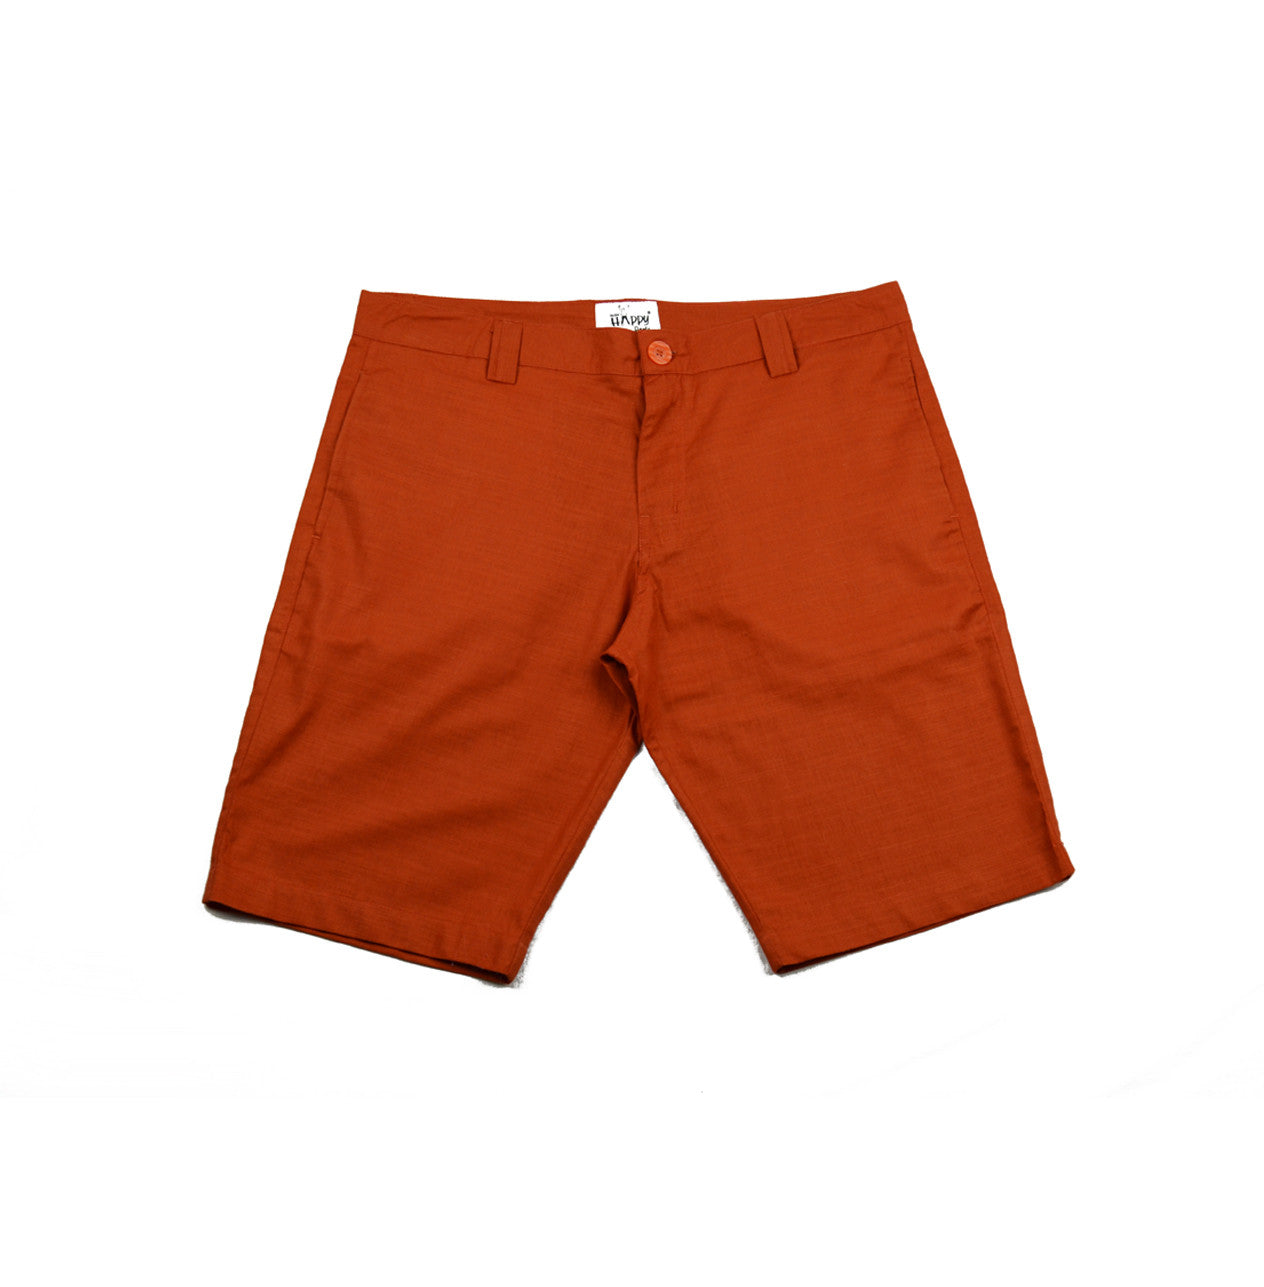 Orange Cotton Shorts - Happy Pants - 1